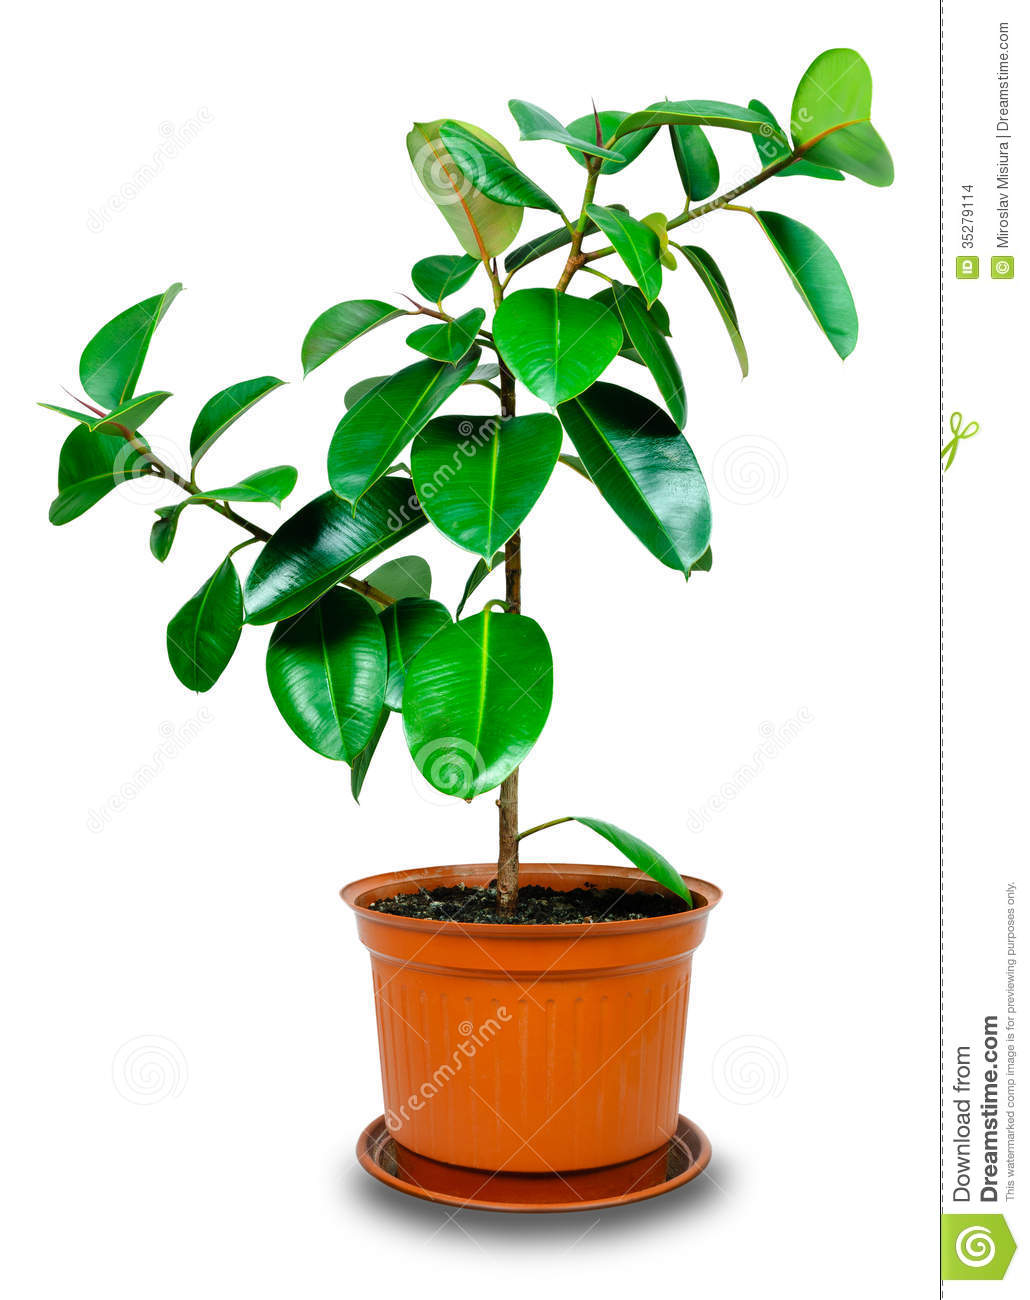 Potted Plant Clipart.